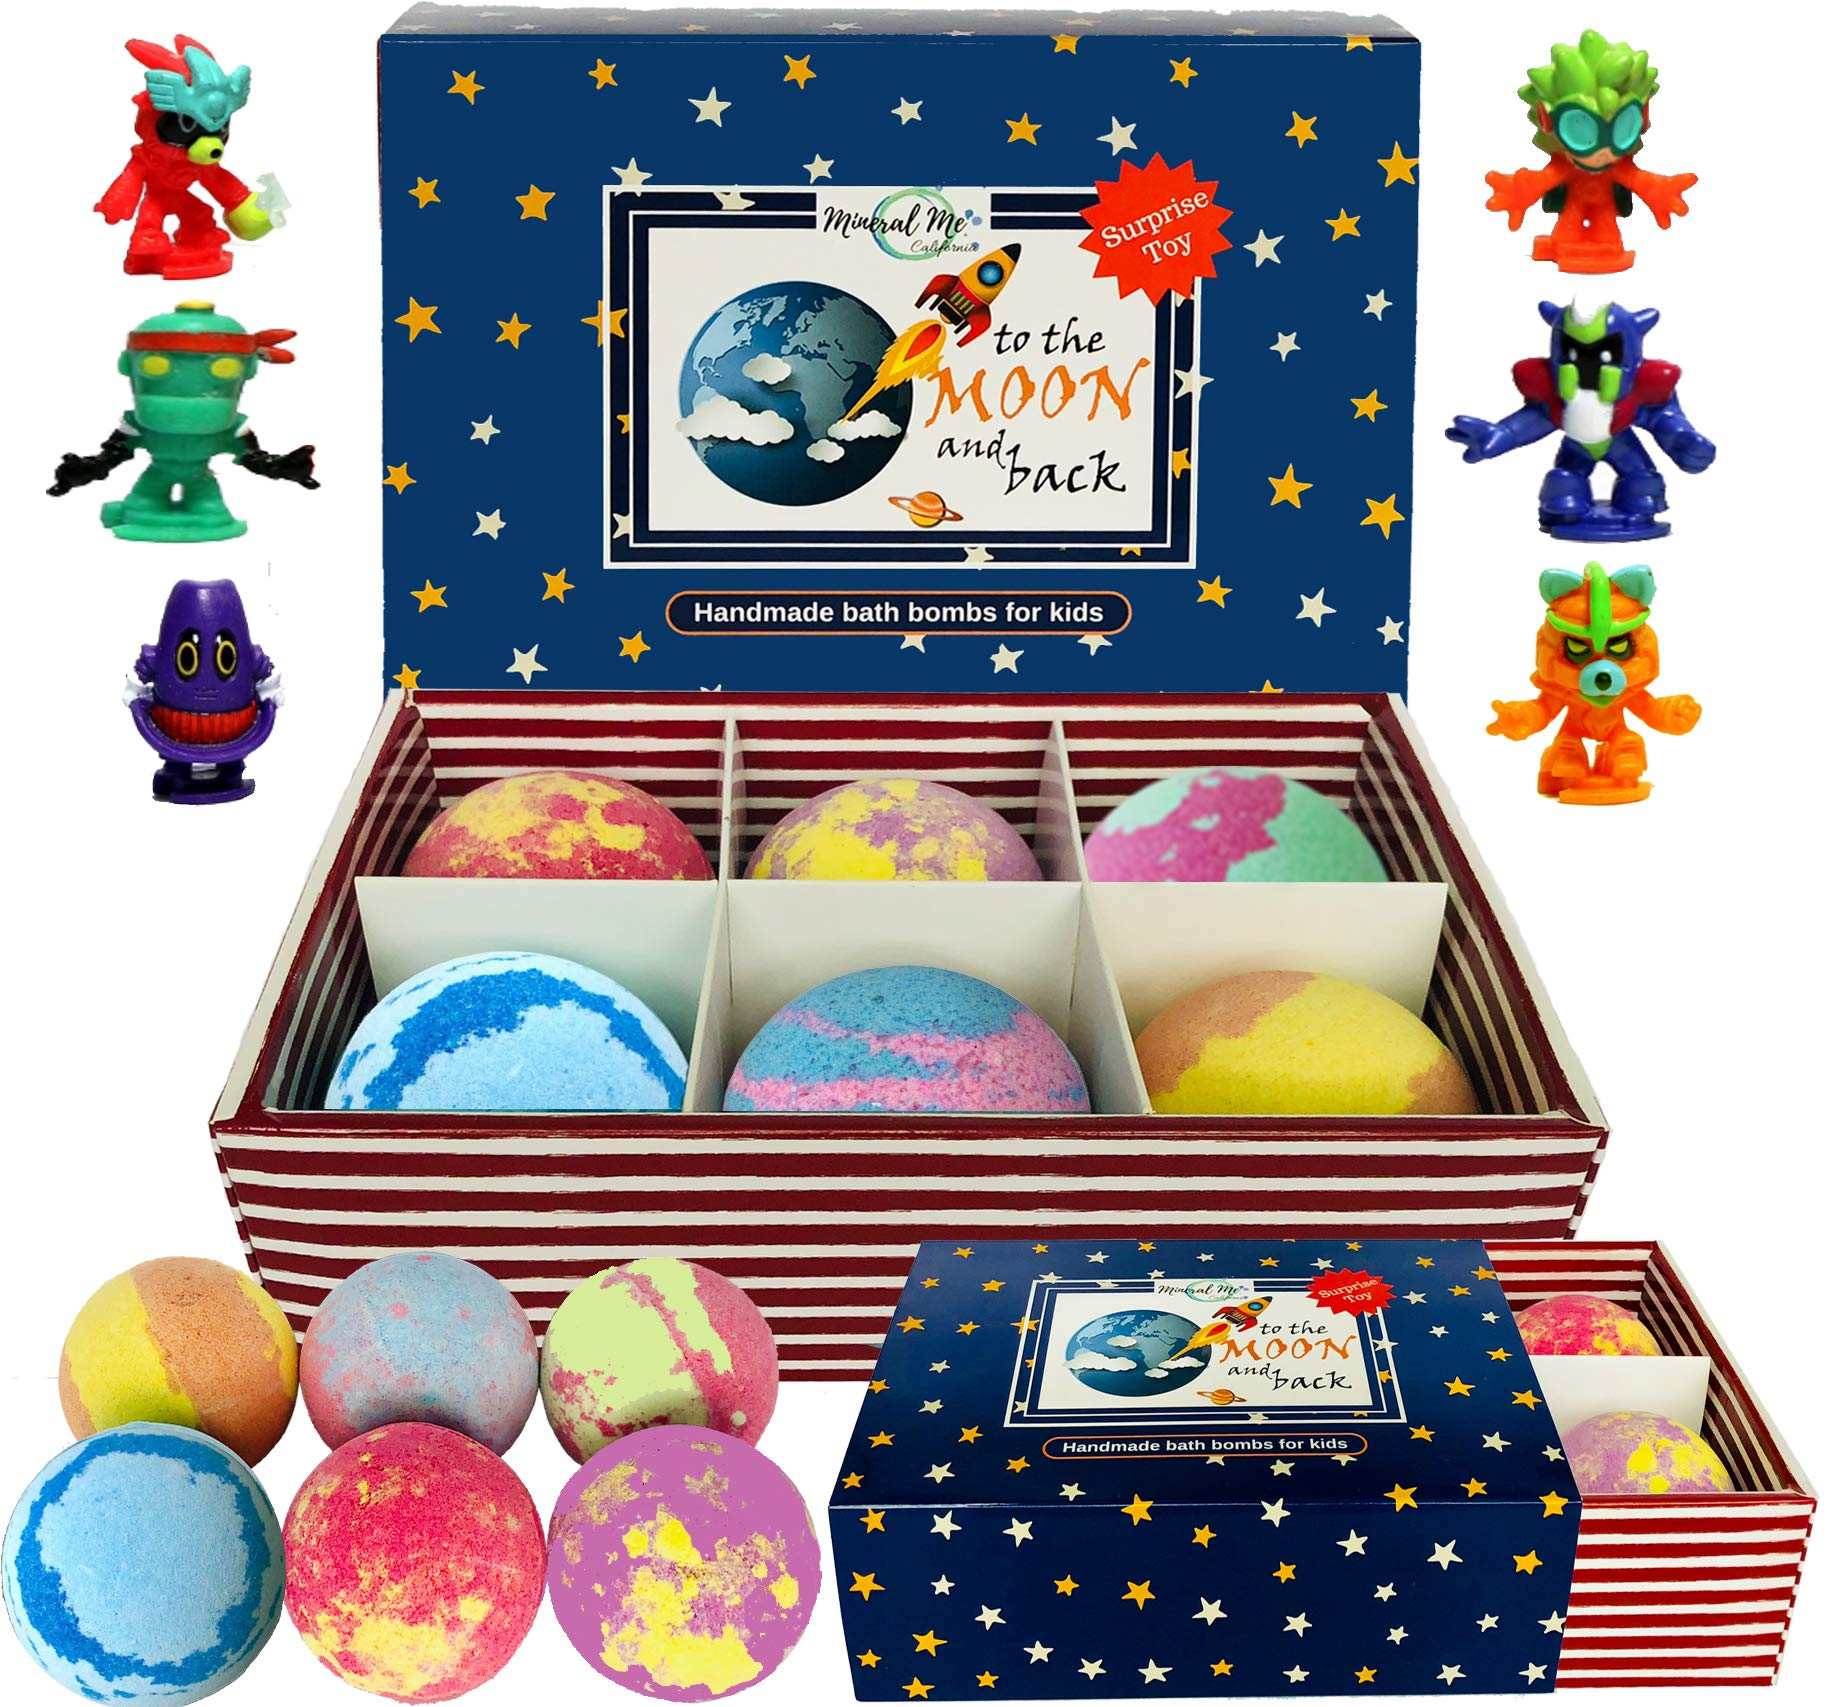 Bath Bombs for Kids with Toys Inside - Set of 6 Natural and Organic Bubble Bath Bombs with Surprise Inside, Gentle and Kids Safe, Bath Fizzies . Birthday or Easter Gift for Girls and Boys